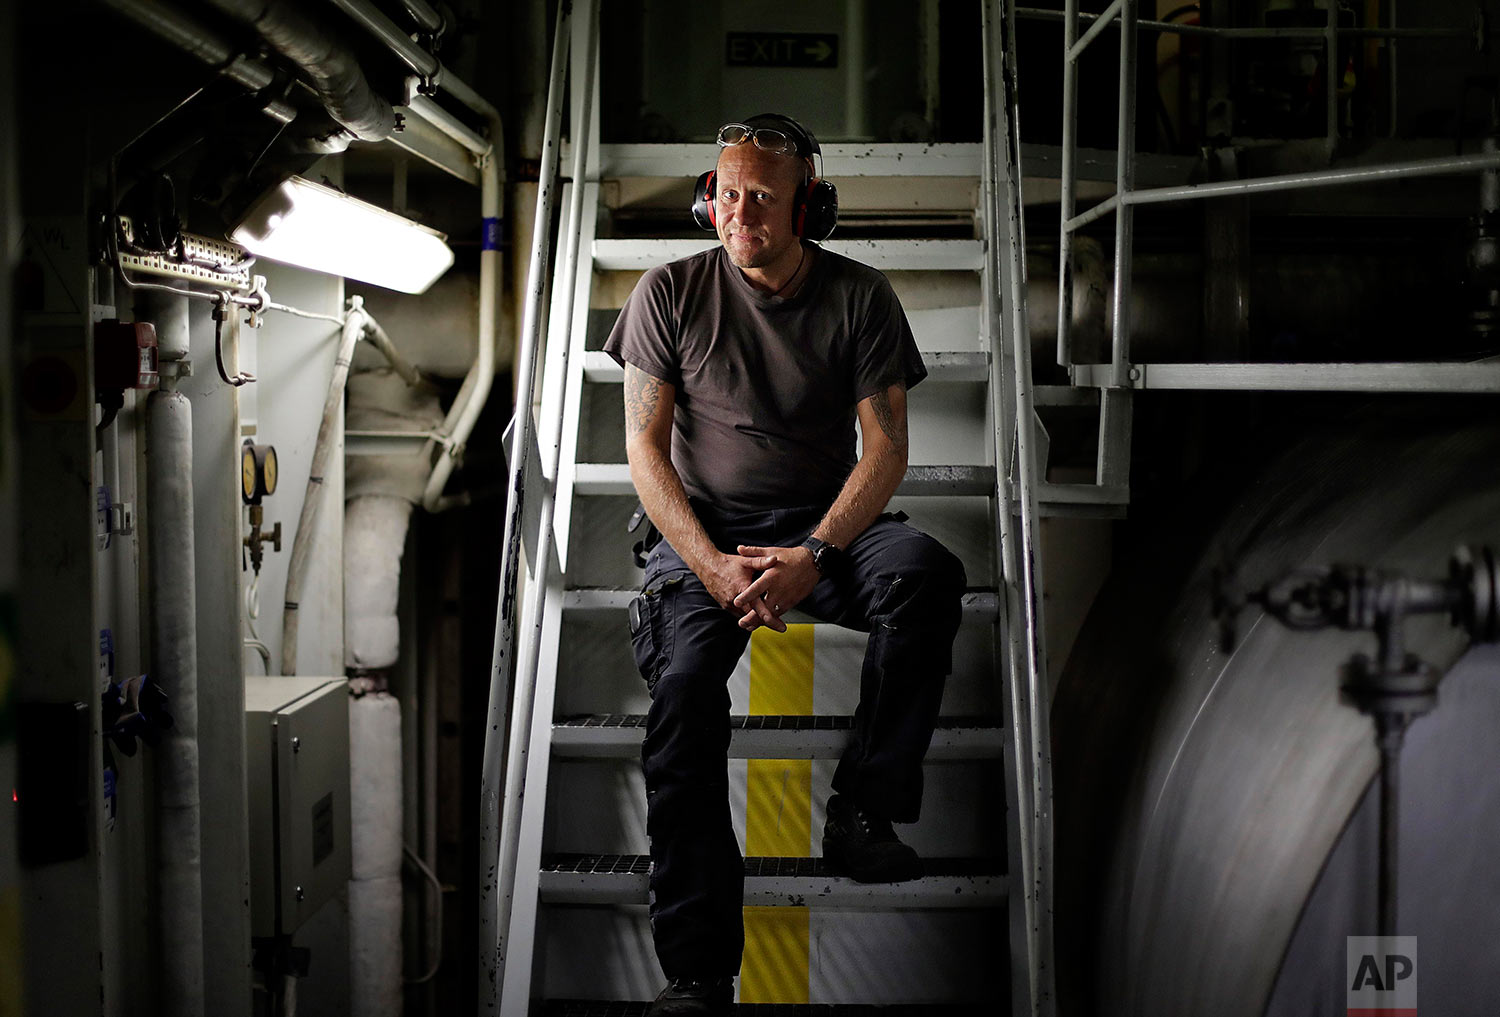 """First engineer Kristian Autio, 44, sits for a portrait in the engine room of the Finnish icebreaker MSV Nordica as it sails in the North Pacific Ocean toward the Bering Strait, Sunday, July 9, 2017. Autio has worked aboard Finnish icebreakers since 2002 and this will be his first time crossing the Arctic's Northwest Passage. Finland has a long history of building icebreakers and has built 60 percent of the world's fleet. """"We take care of the ship as if it's our own,"""" said Autio. """"We [Finns] are very proud of our icebreakers."""" (AP Photo/David Goldman)"""